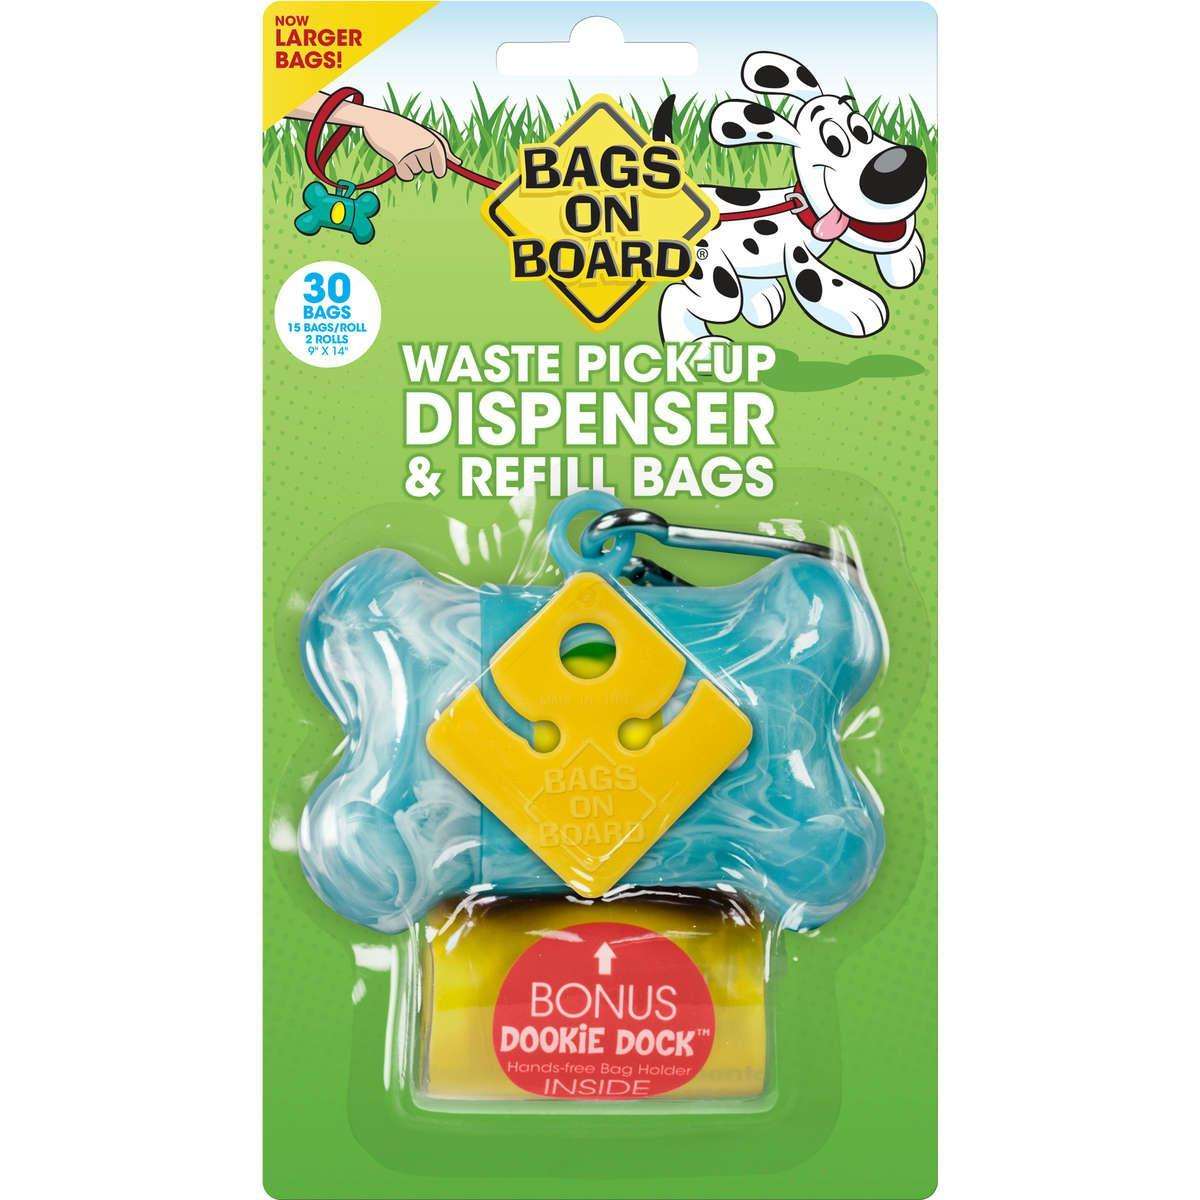 Bags On Board Waste Pick-up Dispenser And Refill Bags With Dookie Dock 30 Bags Turquoise - image 1 de 1